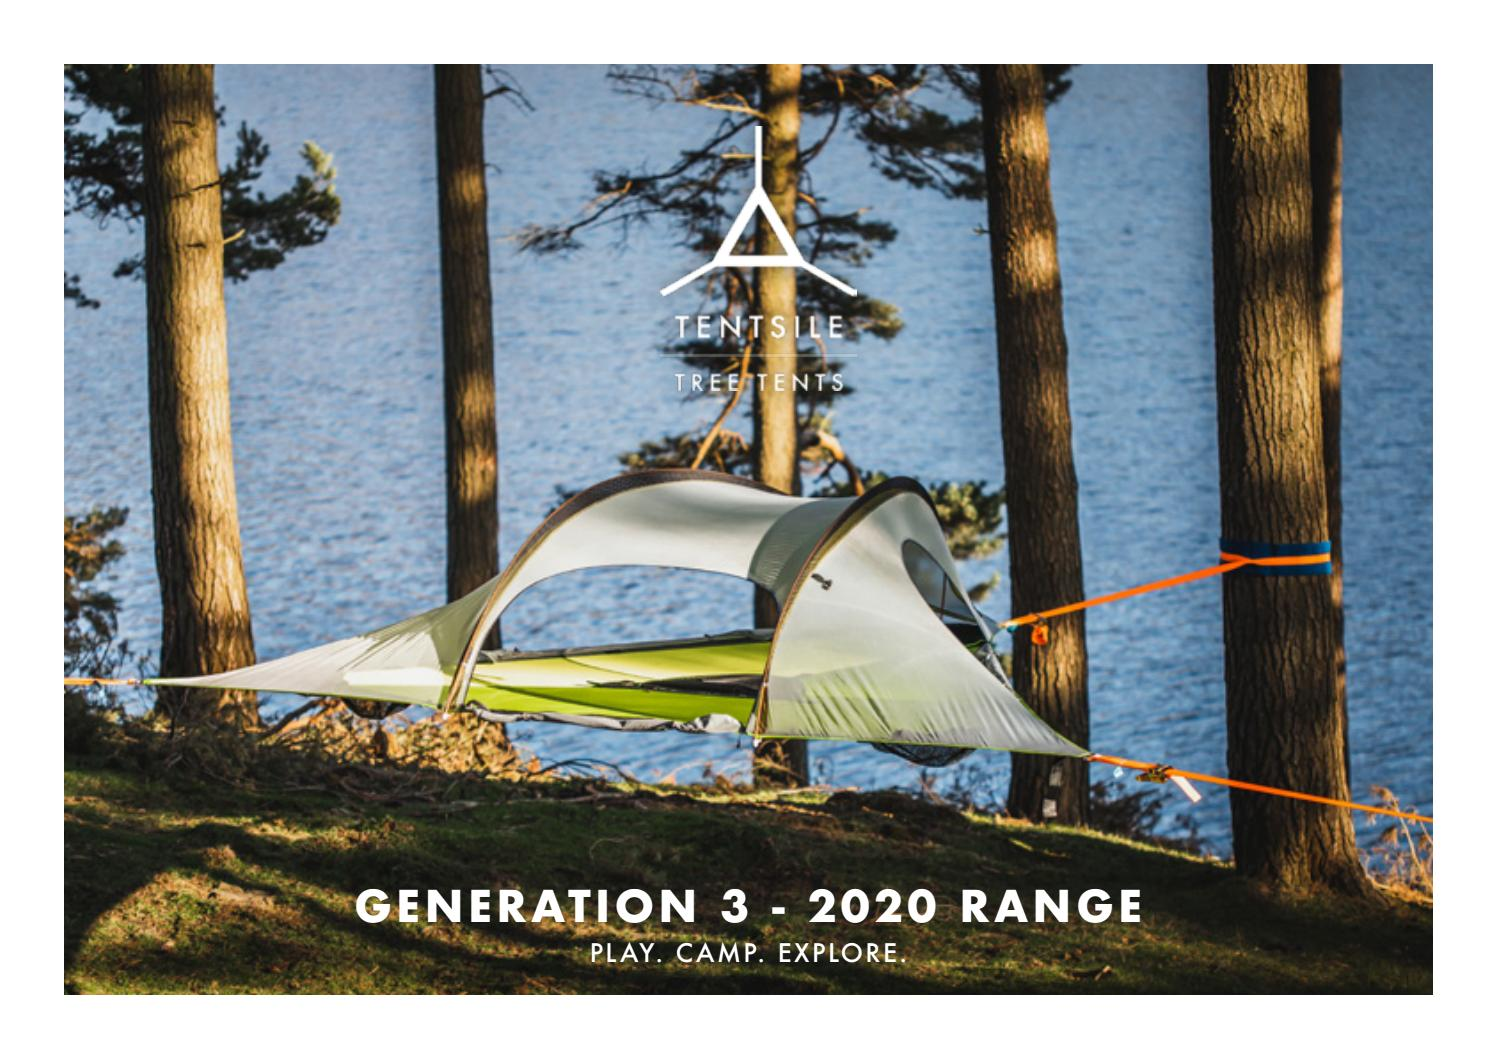 Tentsile 6ft Webbing Ladder for Tentsile Tree Tents and Hammocks